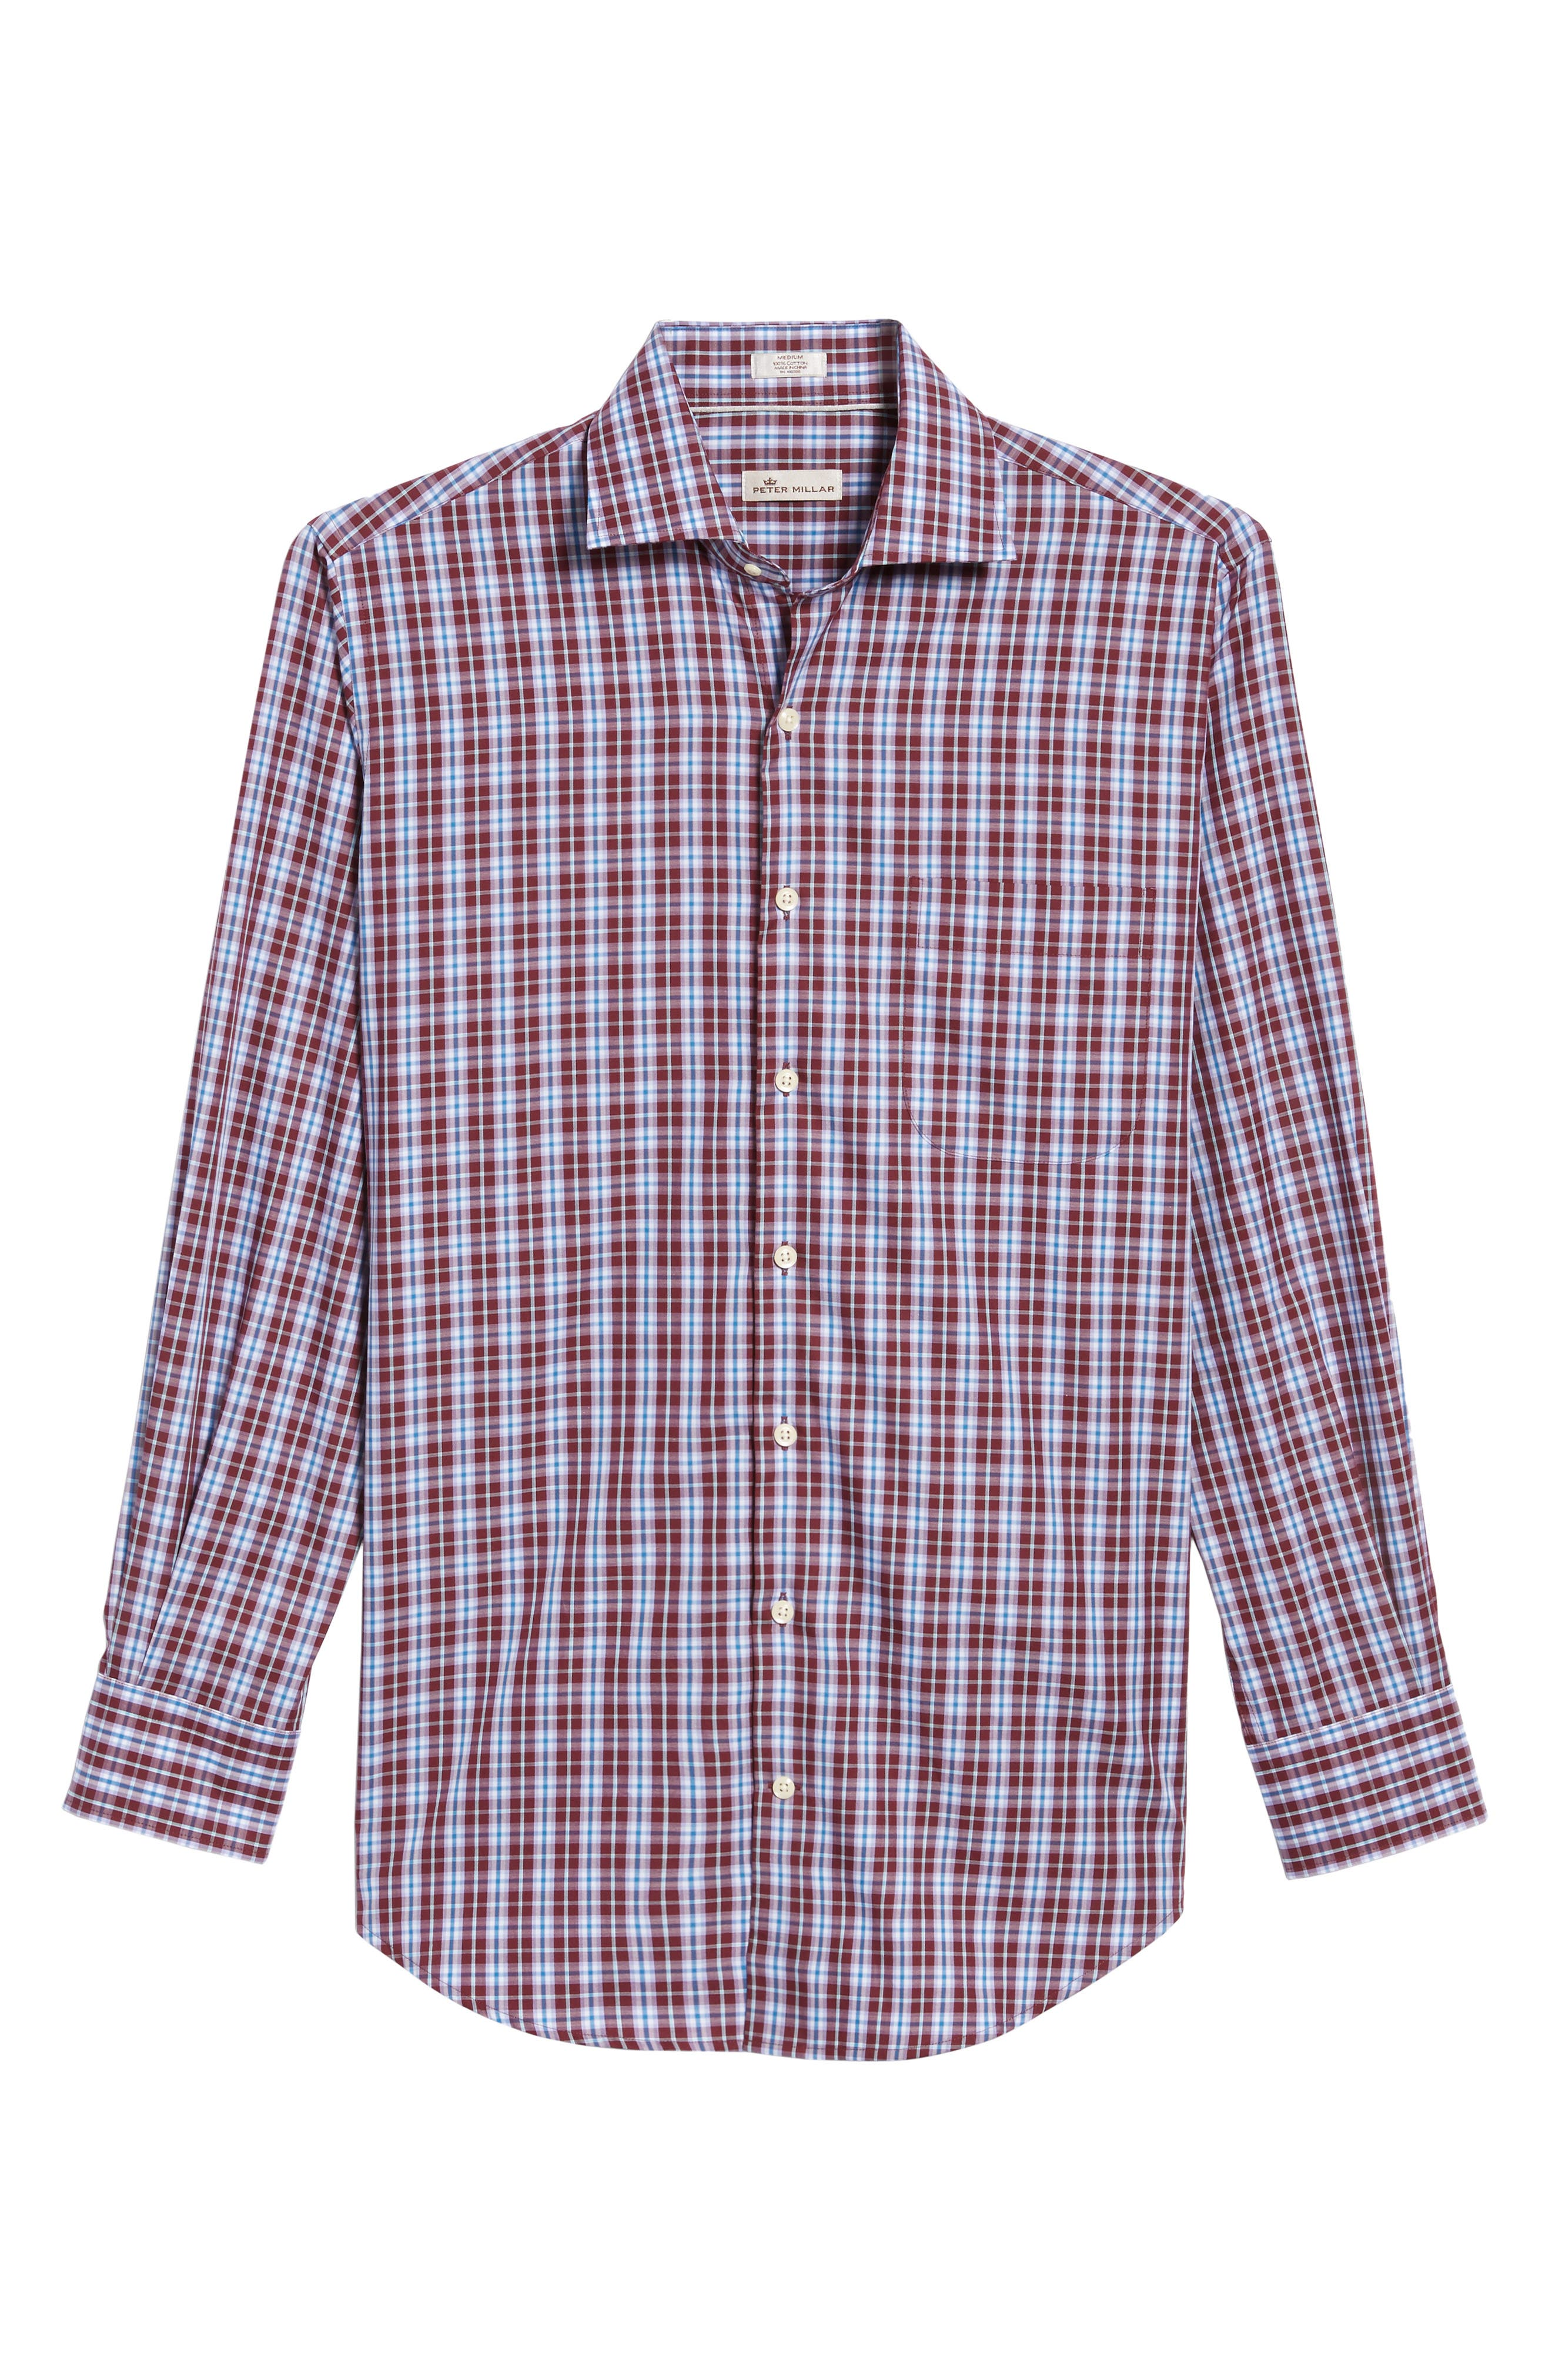 Mitchell Plaid Sport Shirt,                             Alternate thumbnail 6, color,                             French Wine